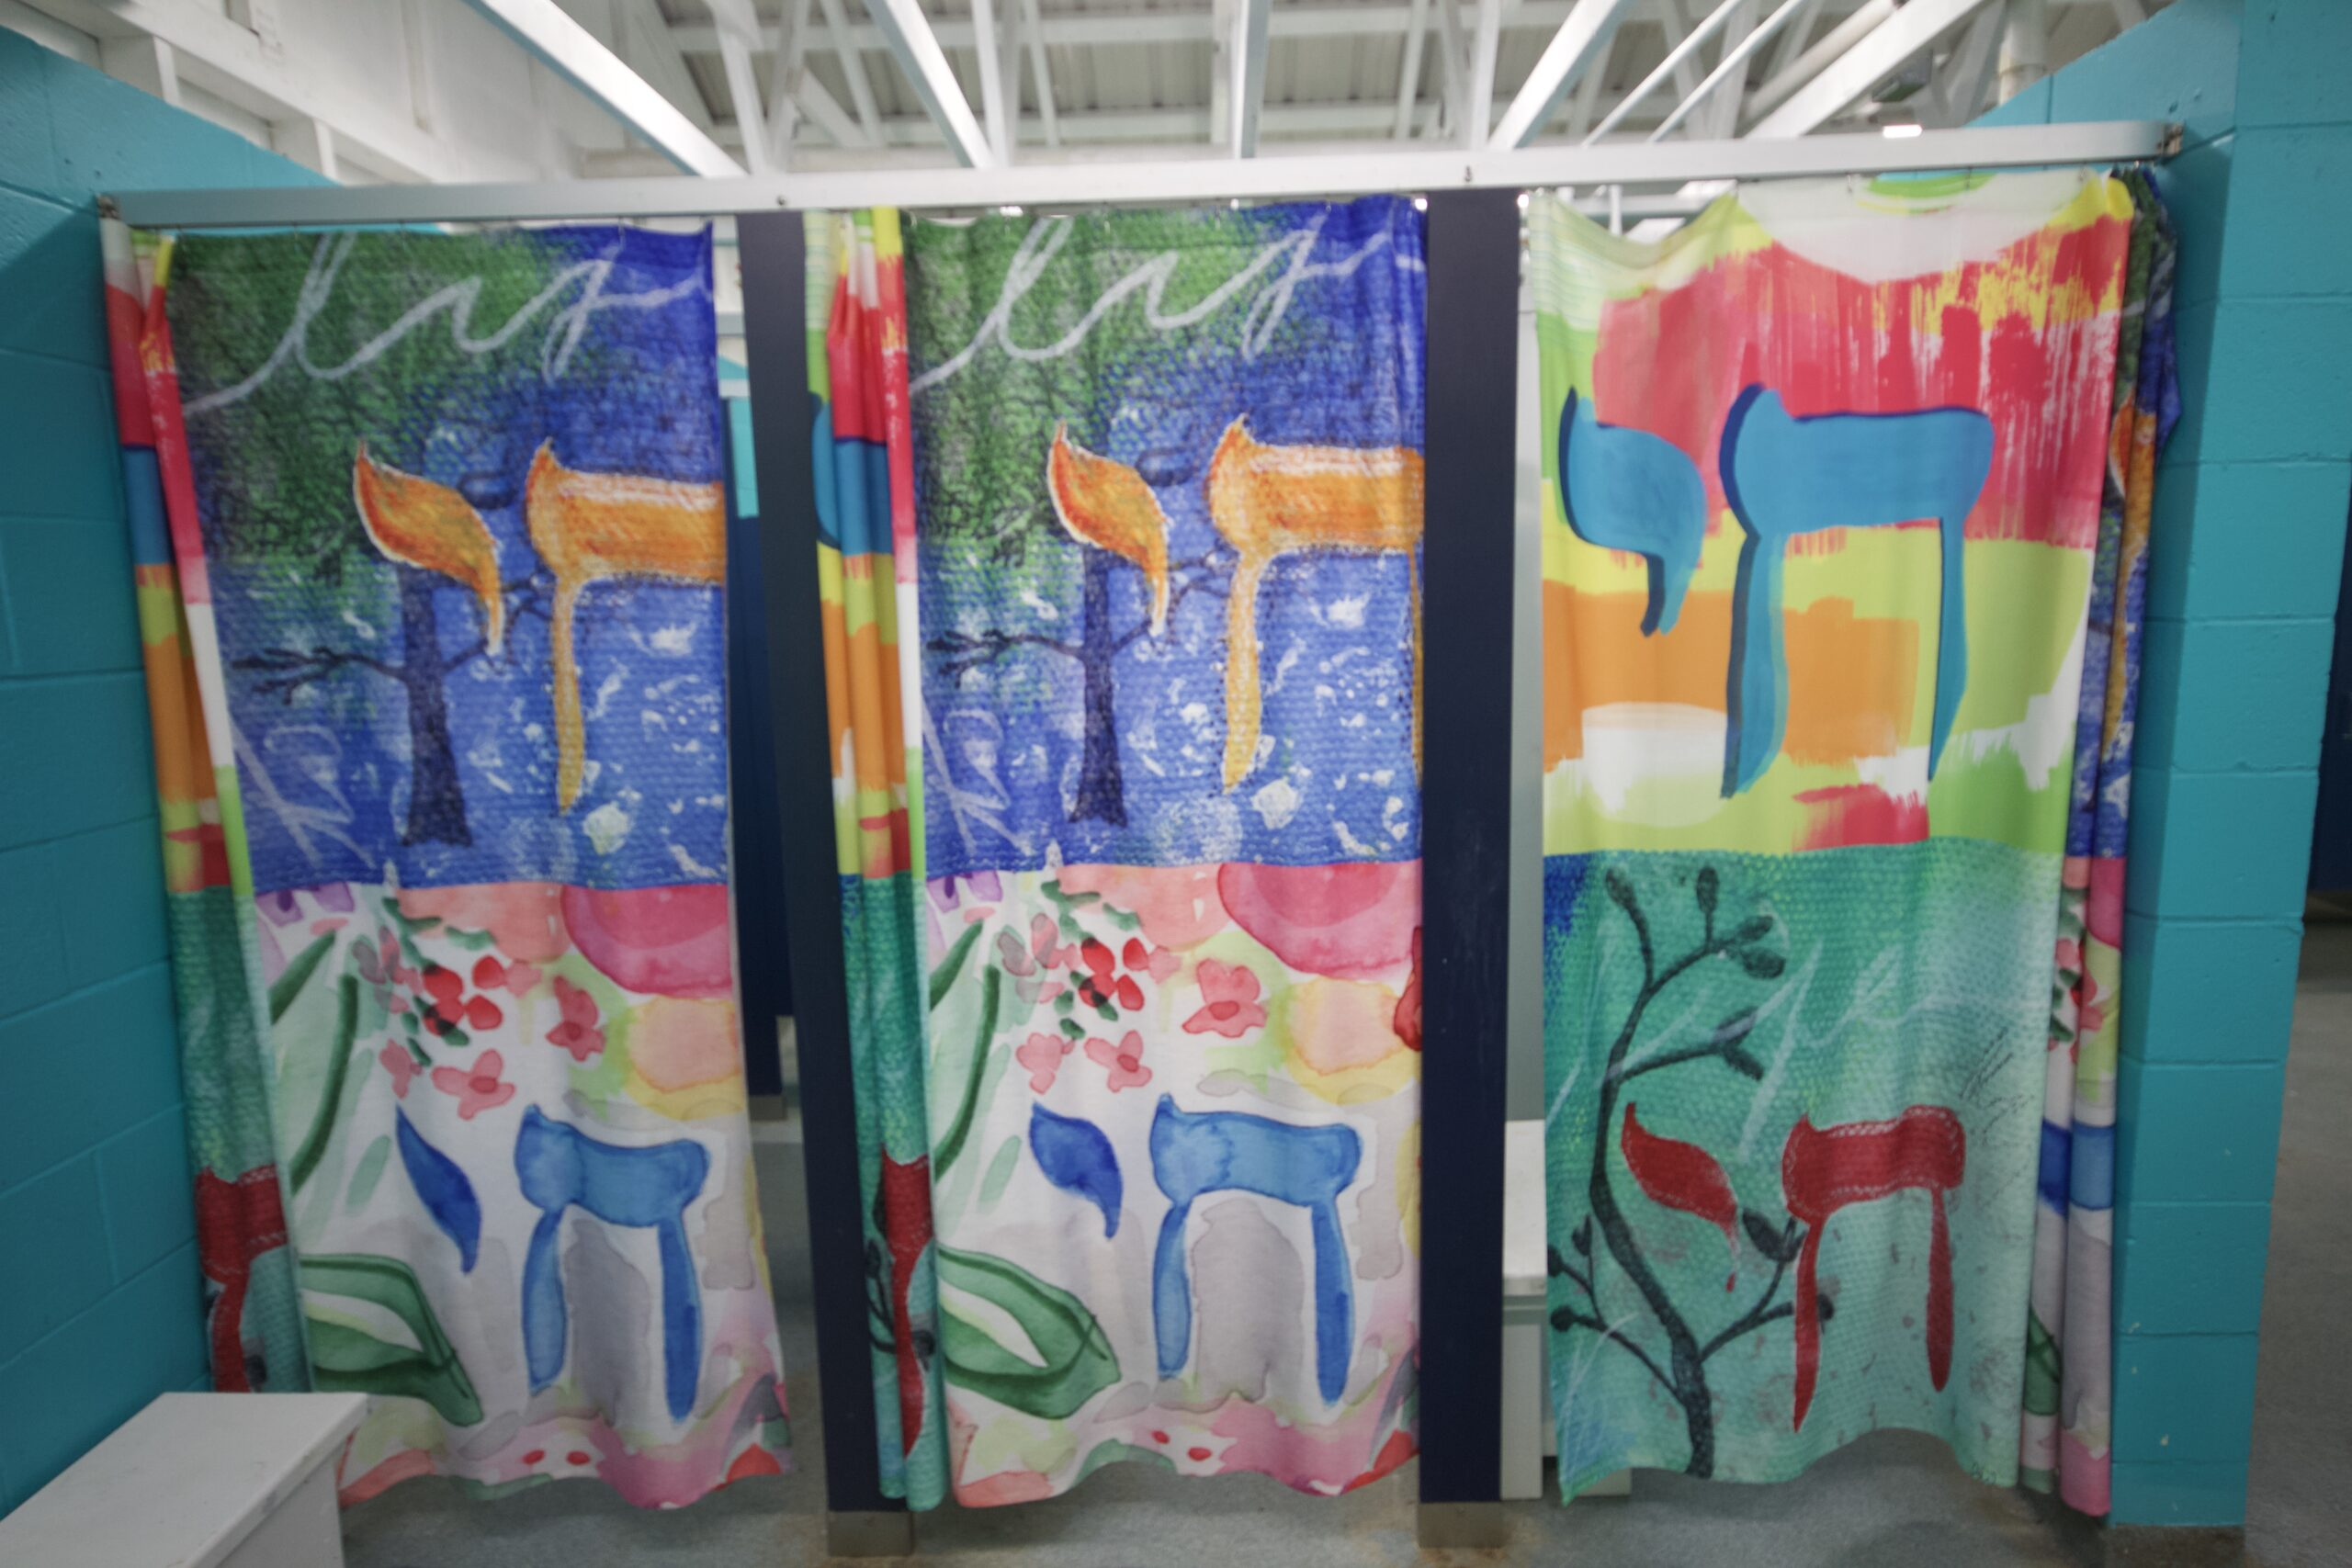 AFTER: COLORFUL JEWISH SHOWER CURTAINS CREATE PRIVACY